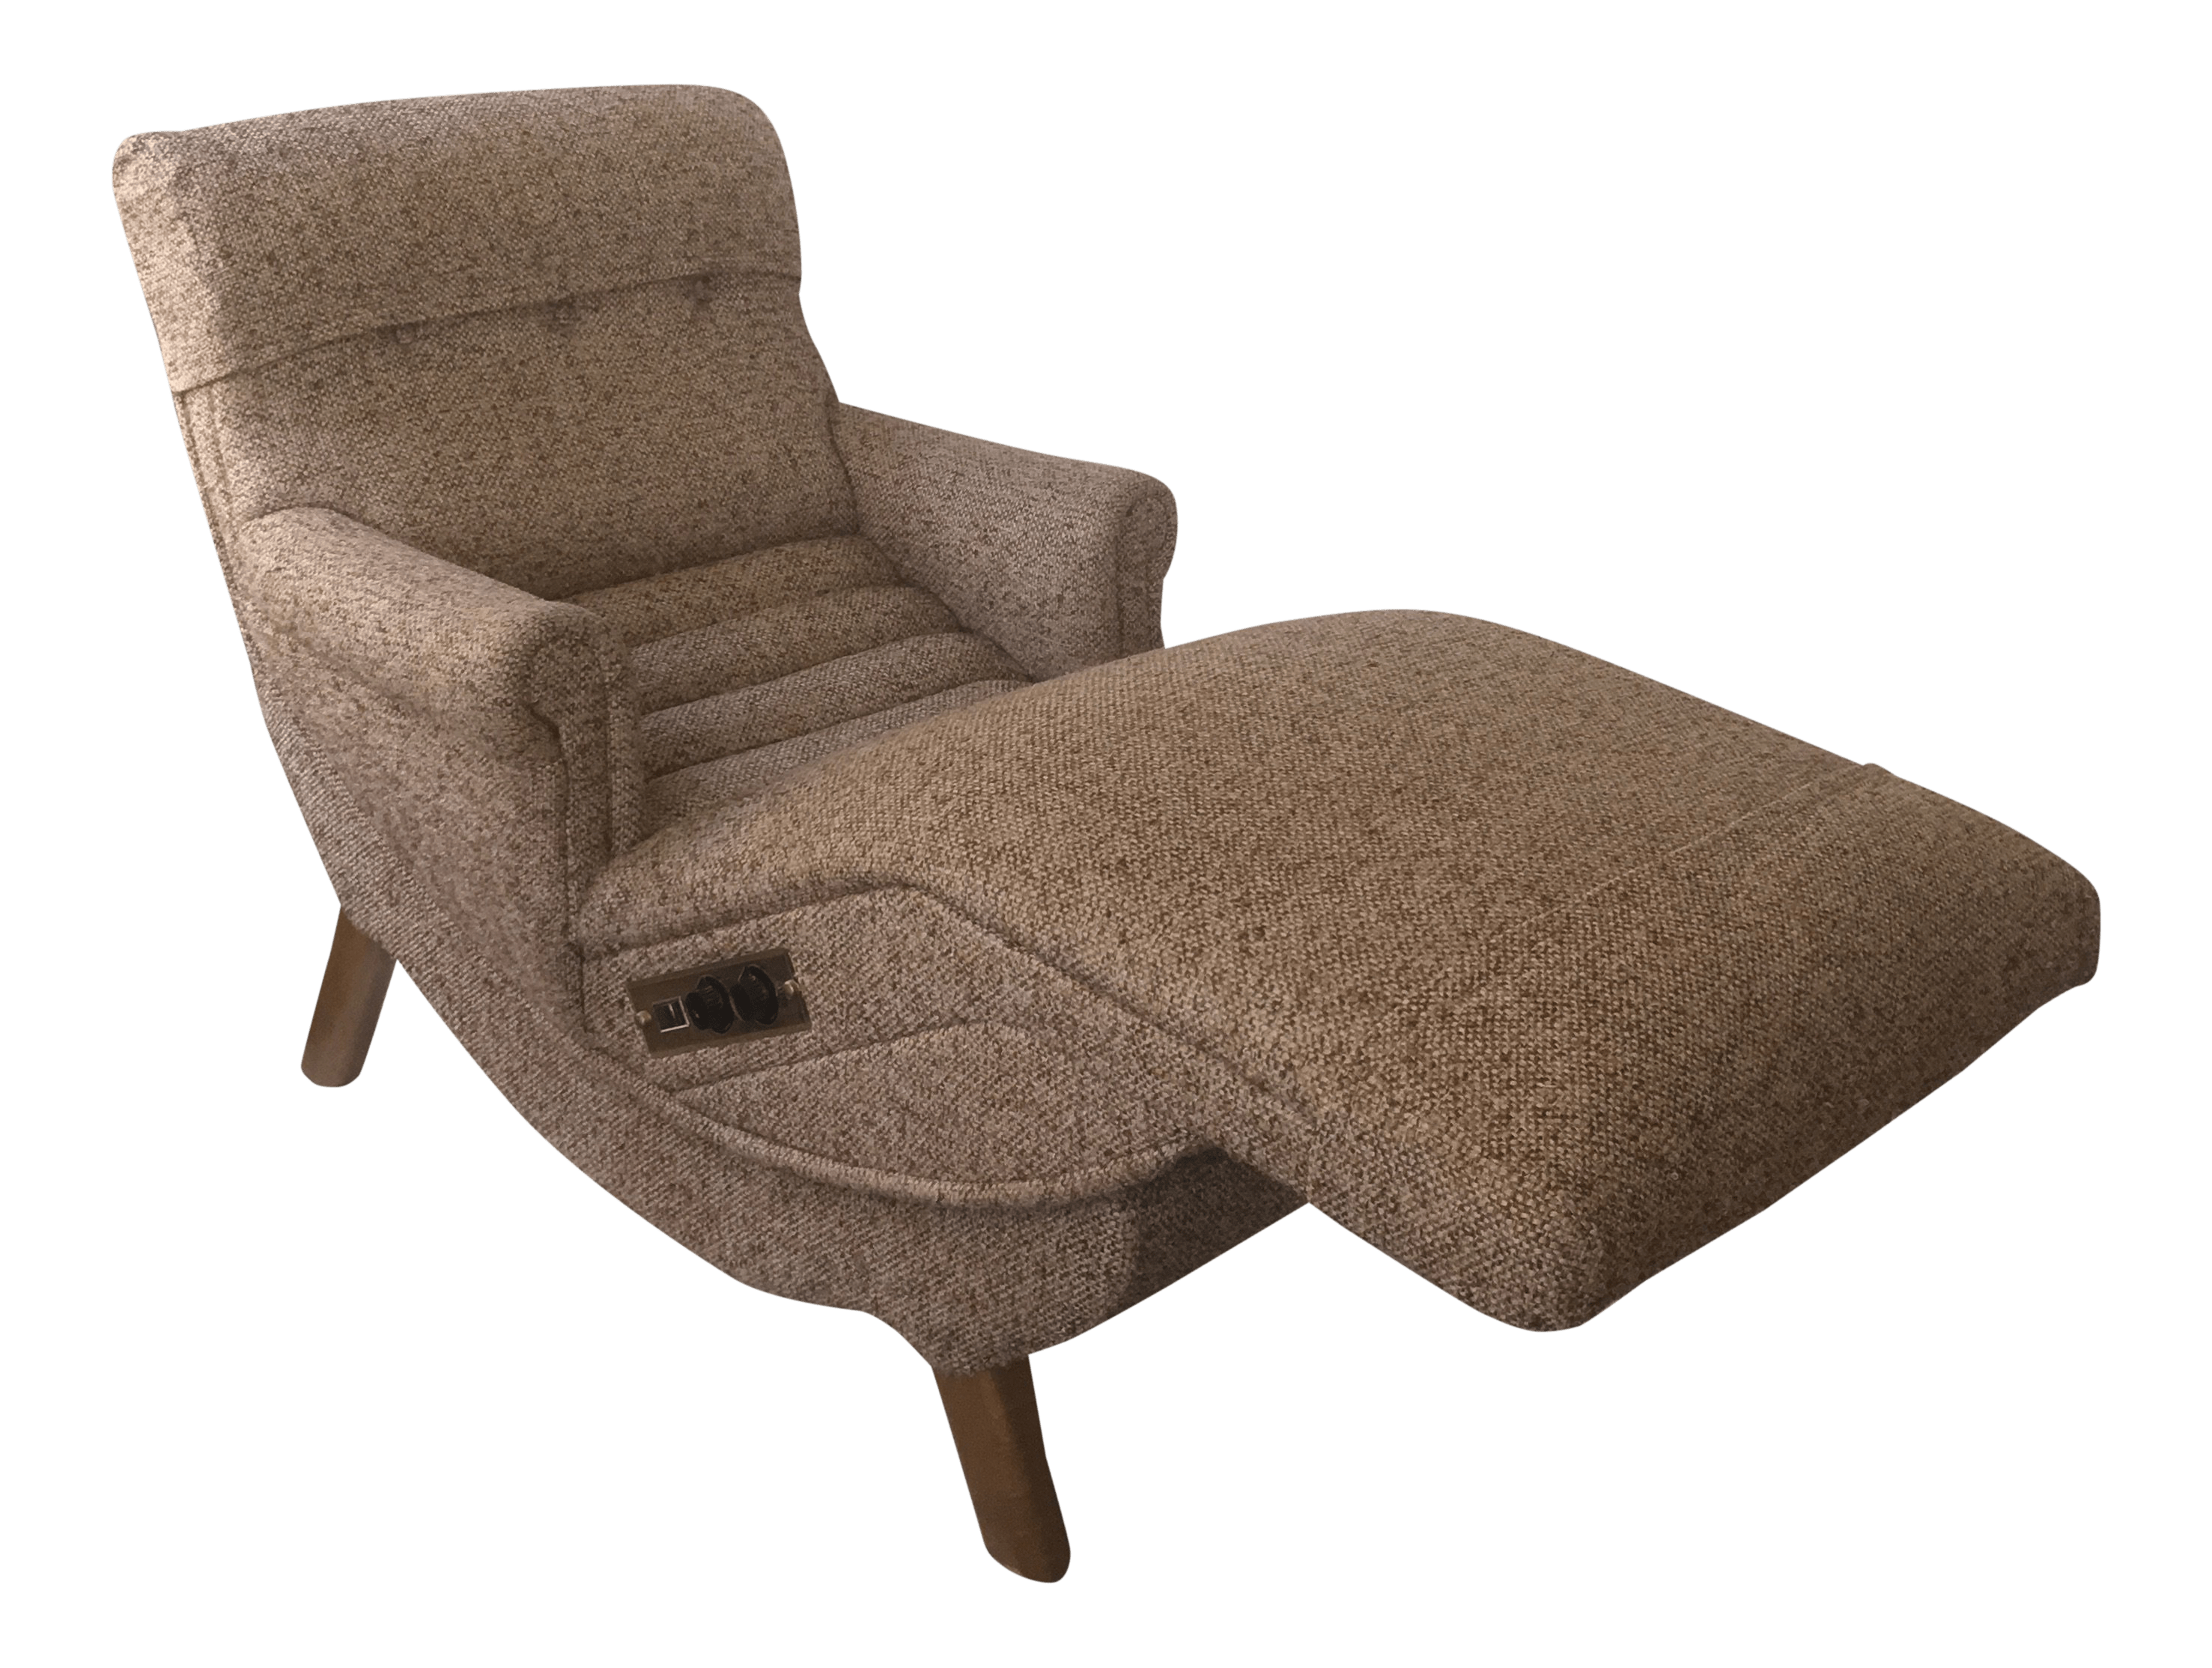 Contour Chair Lounge Vintage Reclining Lounge Chair